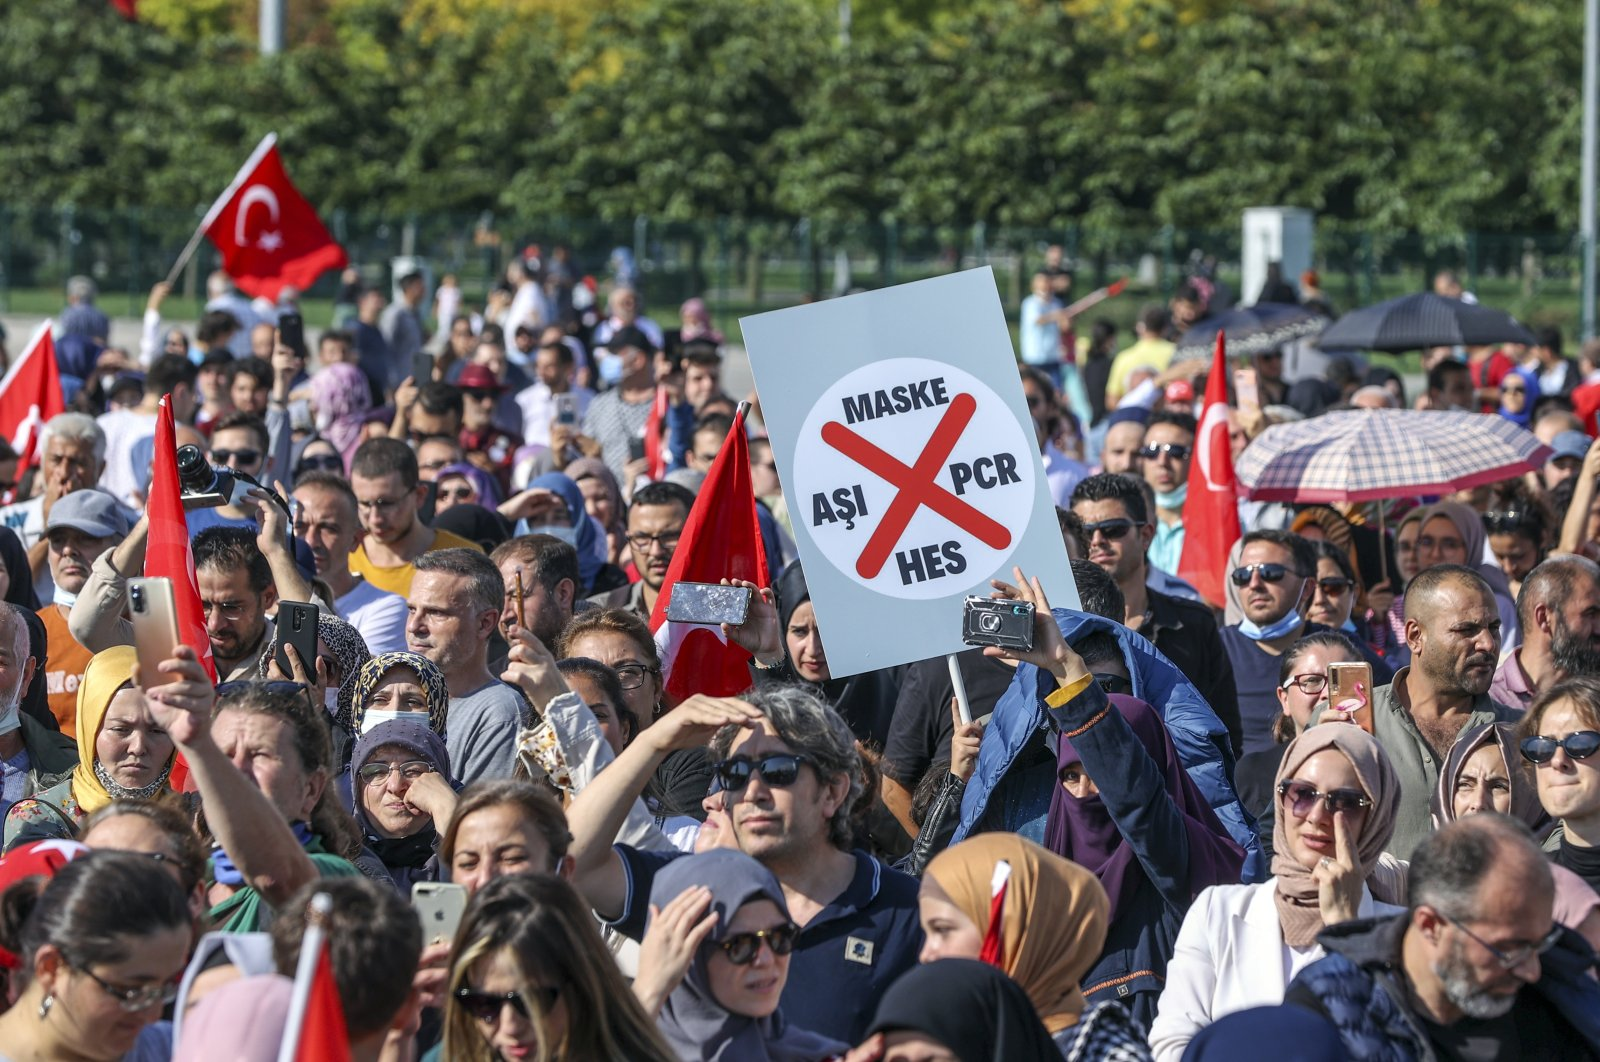 A group of people demonstrate against COVID-19 vaccinations, testing and mask mandates in Maltepe, Istanbul, Turkey, Sept. 11, 2021. (AA Photo)